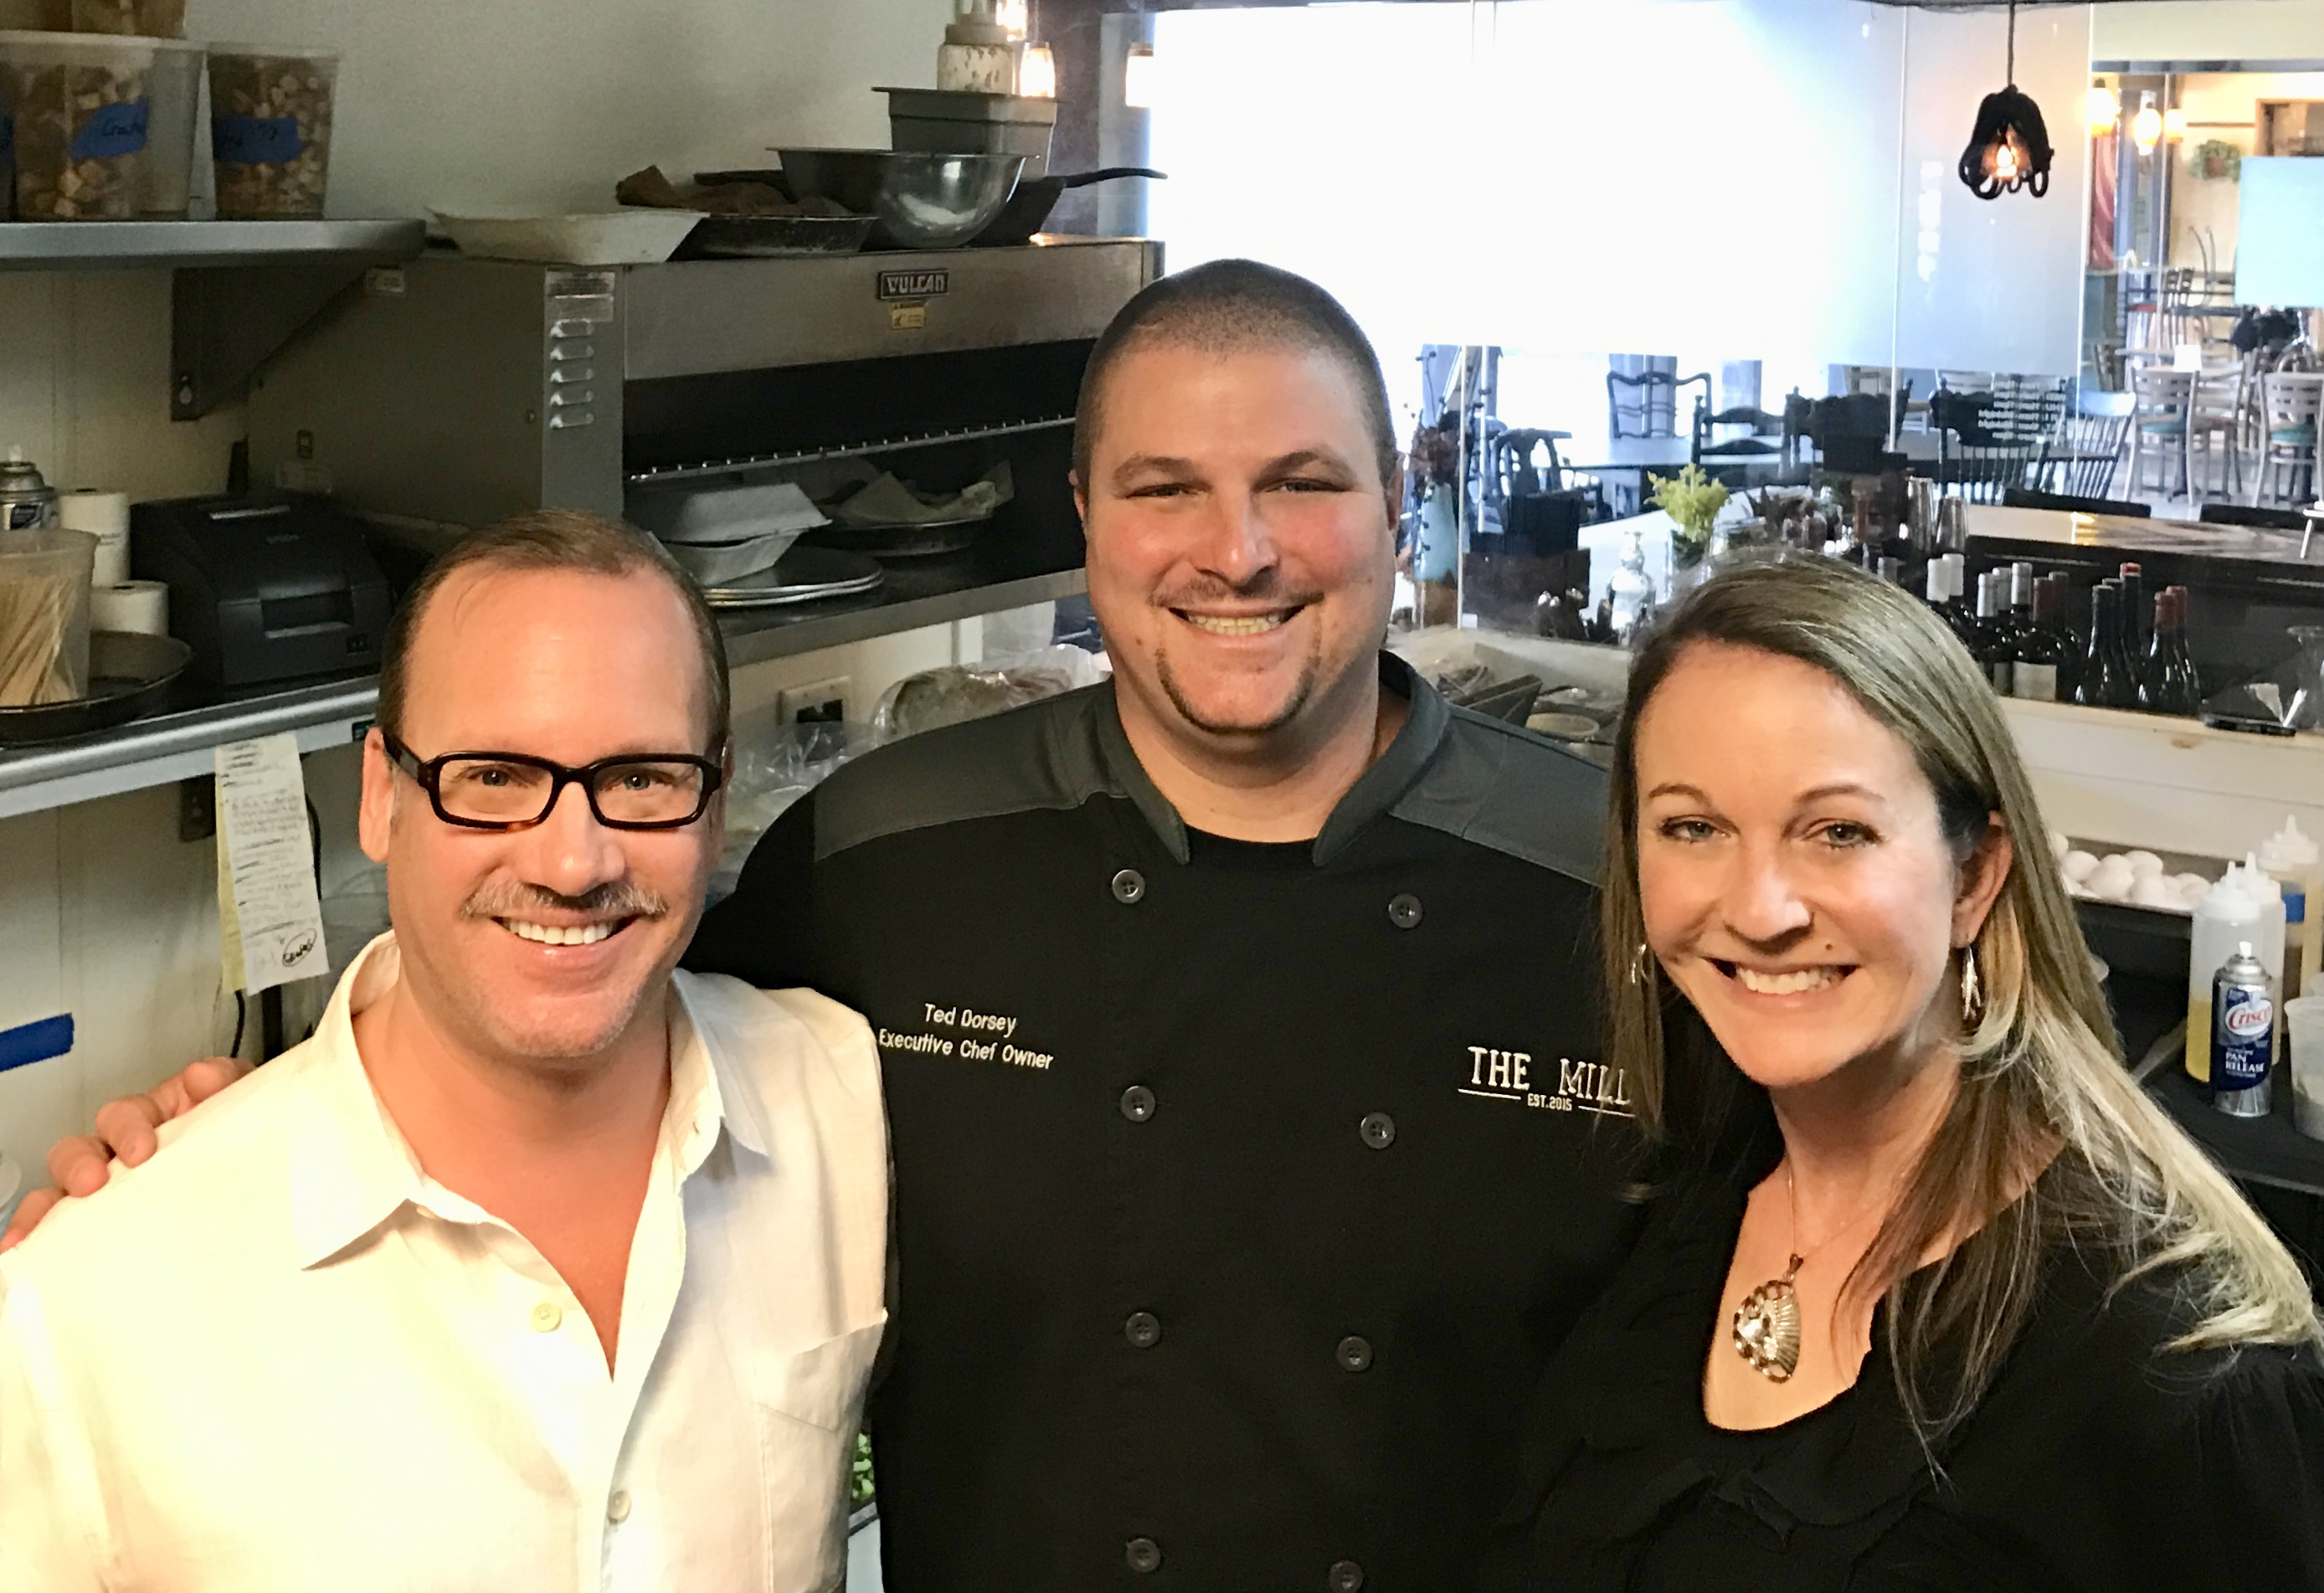 Kevin & Lori in the Kitchen at The Mill with Chef Ted